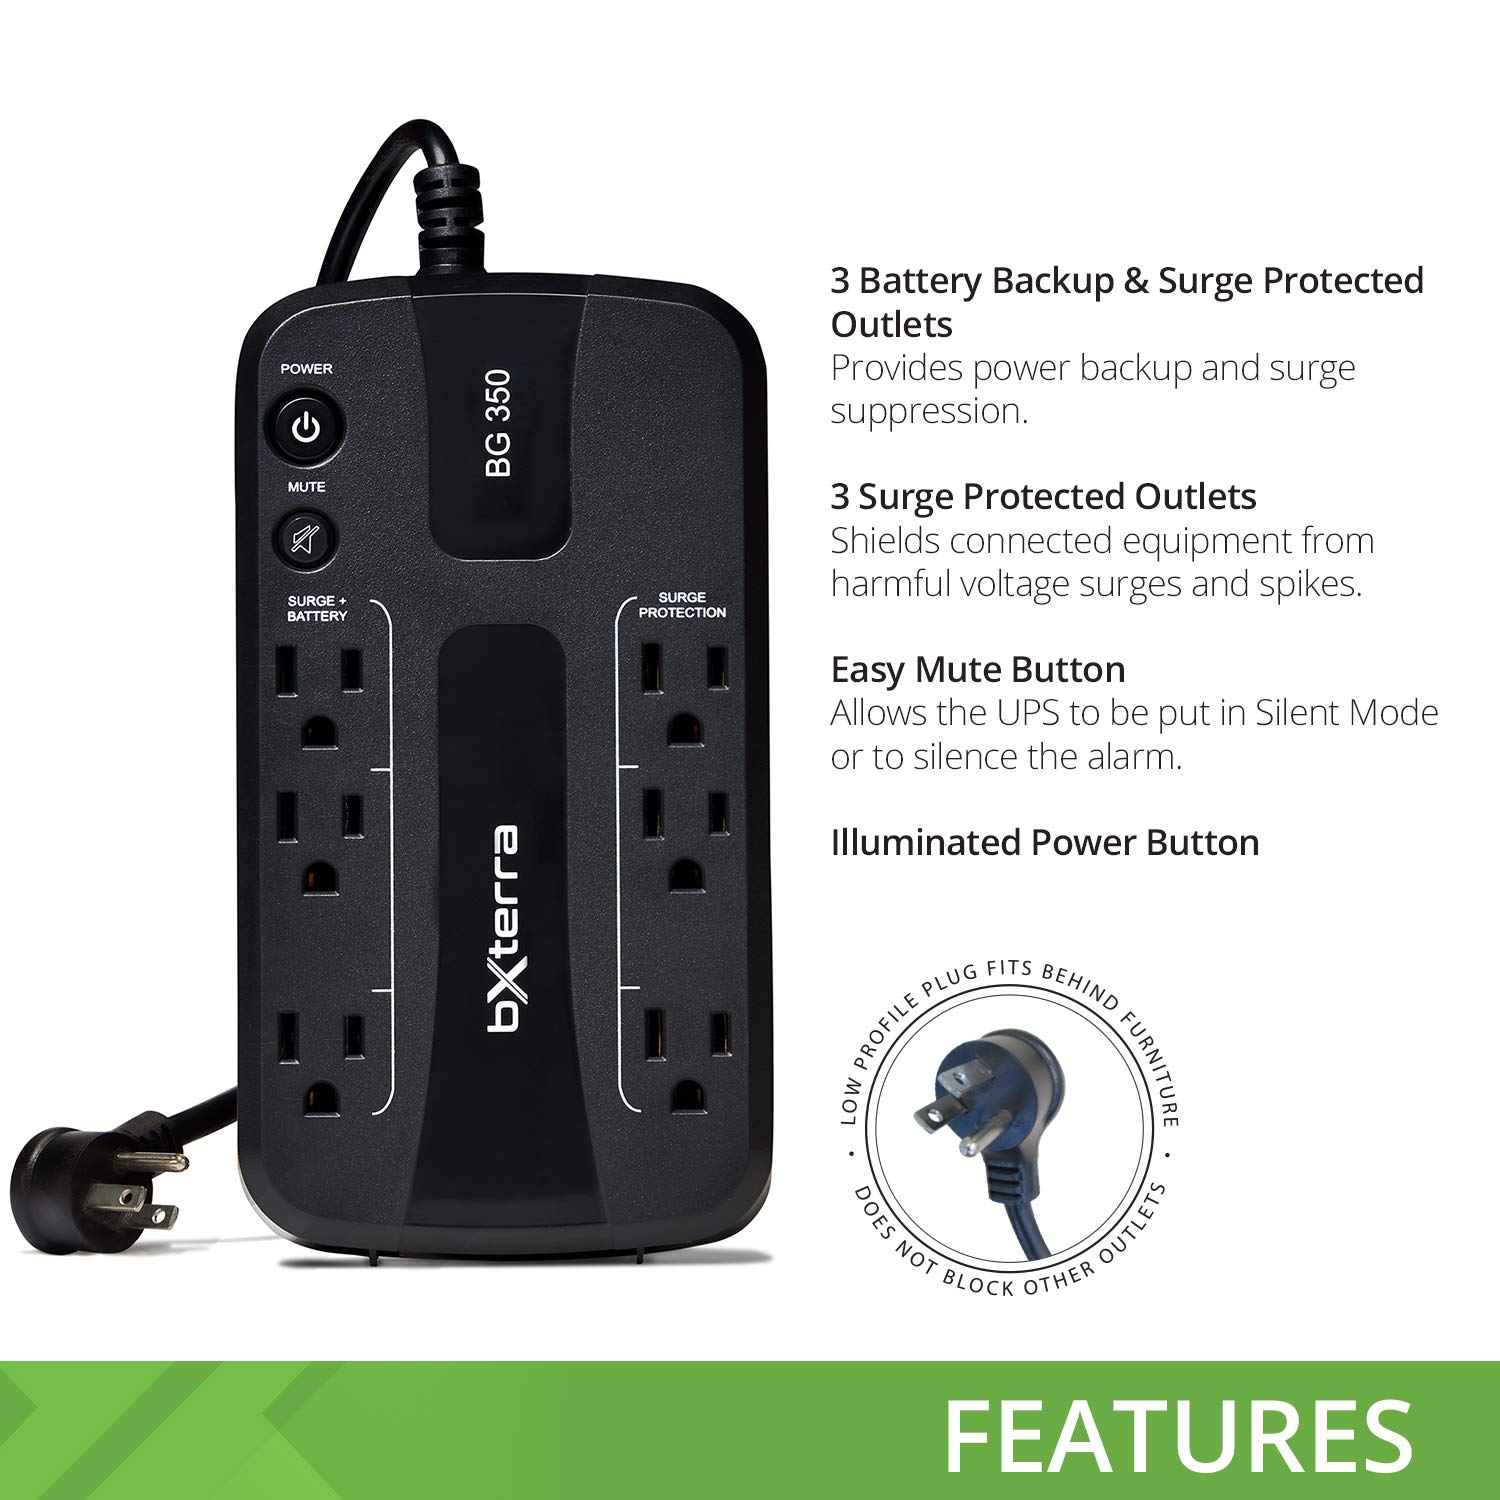 bXterra 350VA UPS BG350 Standby UPS Battery Backup, 6 Outlets, Easy Mute Button, RJ11, Energy Star, LEDs, Contoured Design, Compact by bXterra (Image #2)